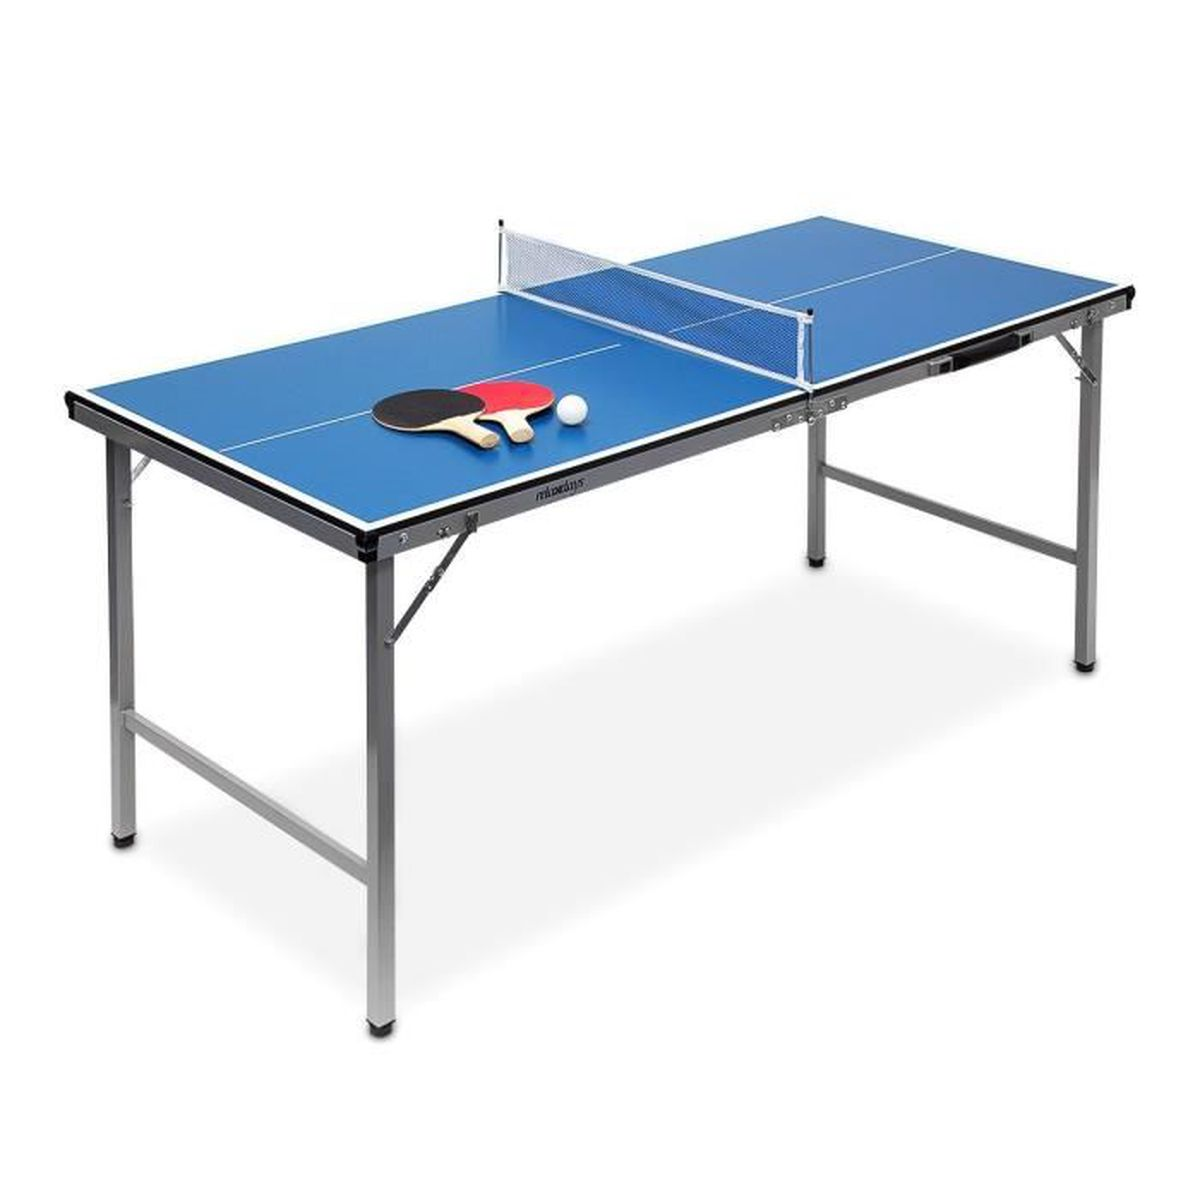 Table de ping pong midi jardin portable tennis de table for Table ping pong exterieur pas cher